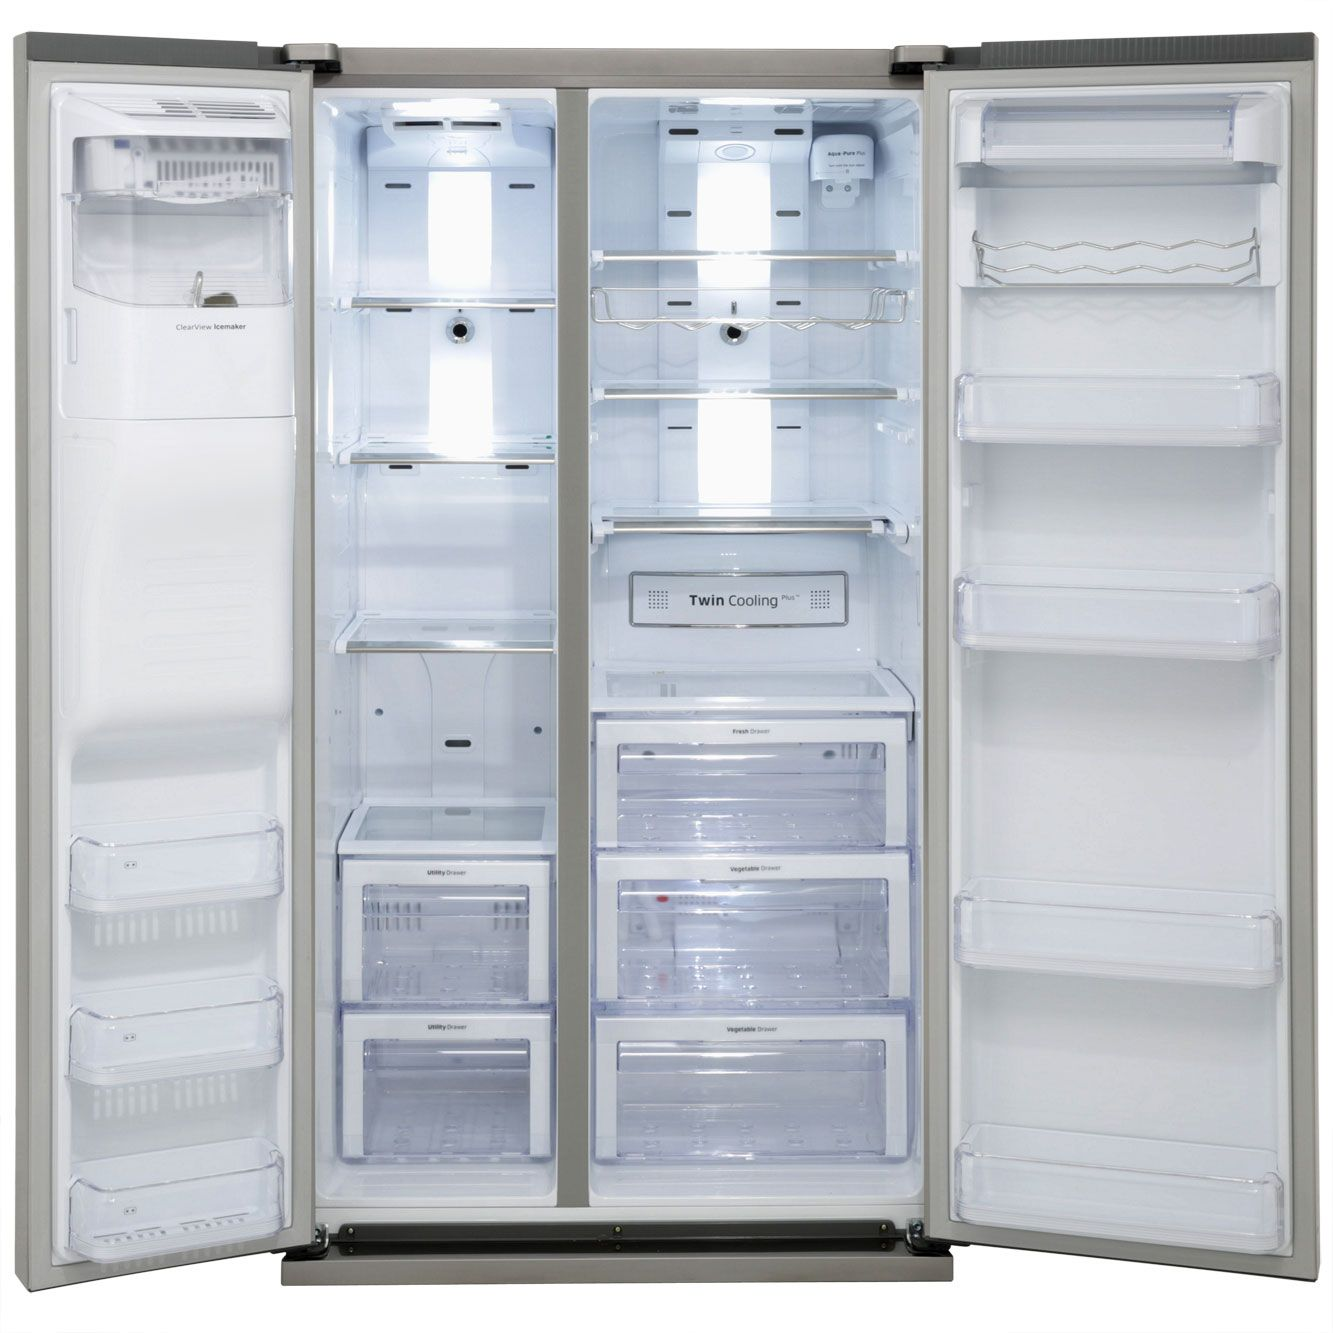 kitchens samsung american fridge freezer   rsg5ucrs   ao com   fridges      rh   pinterest com